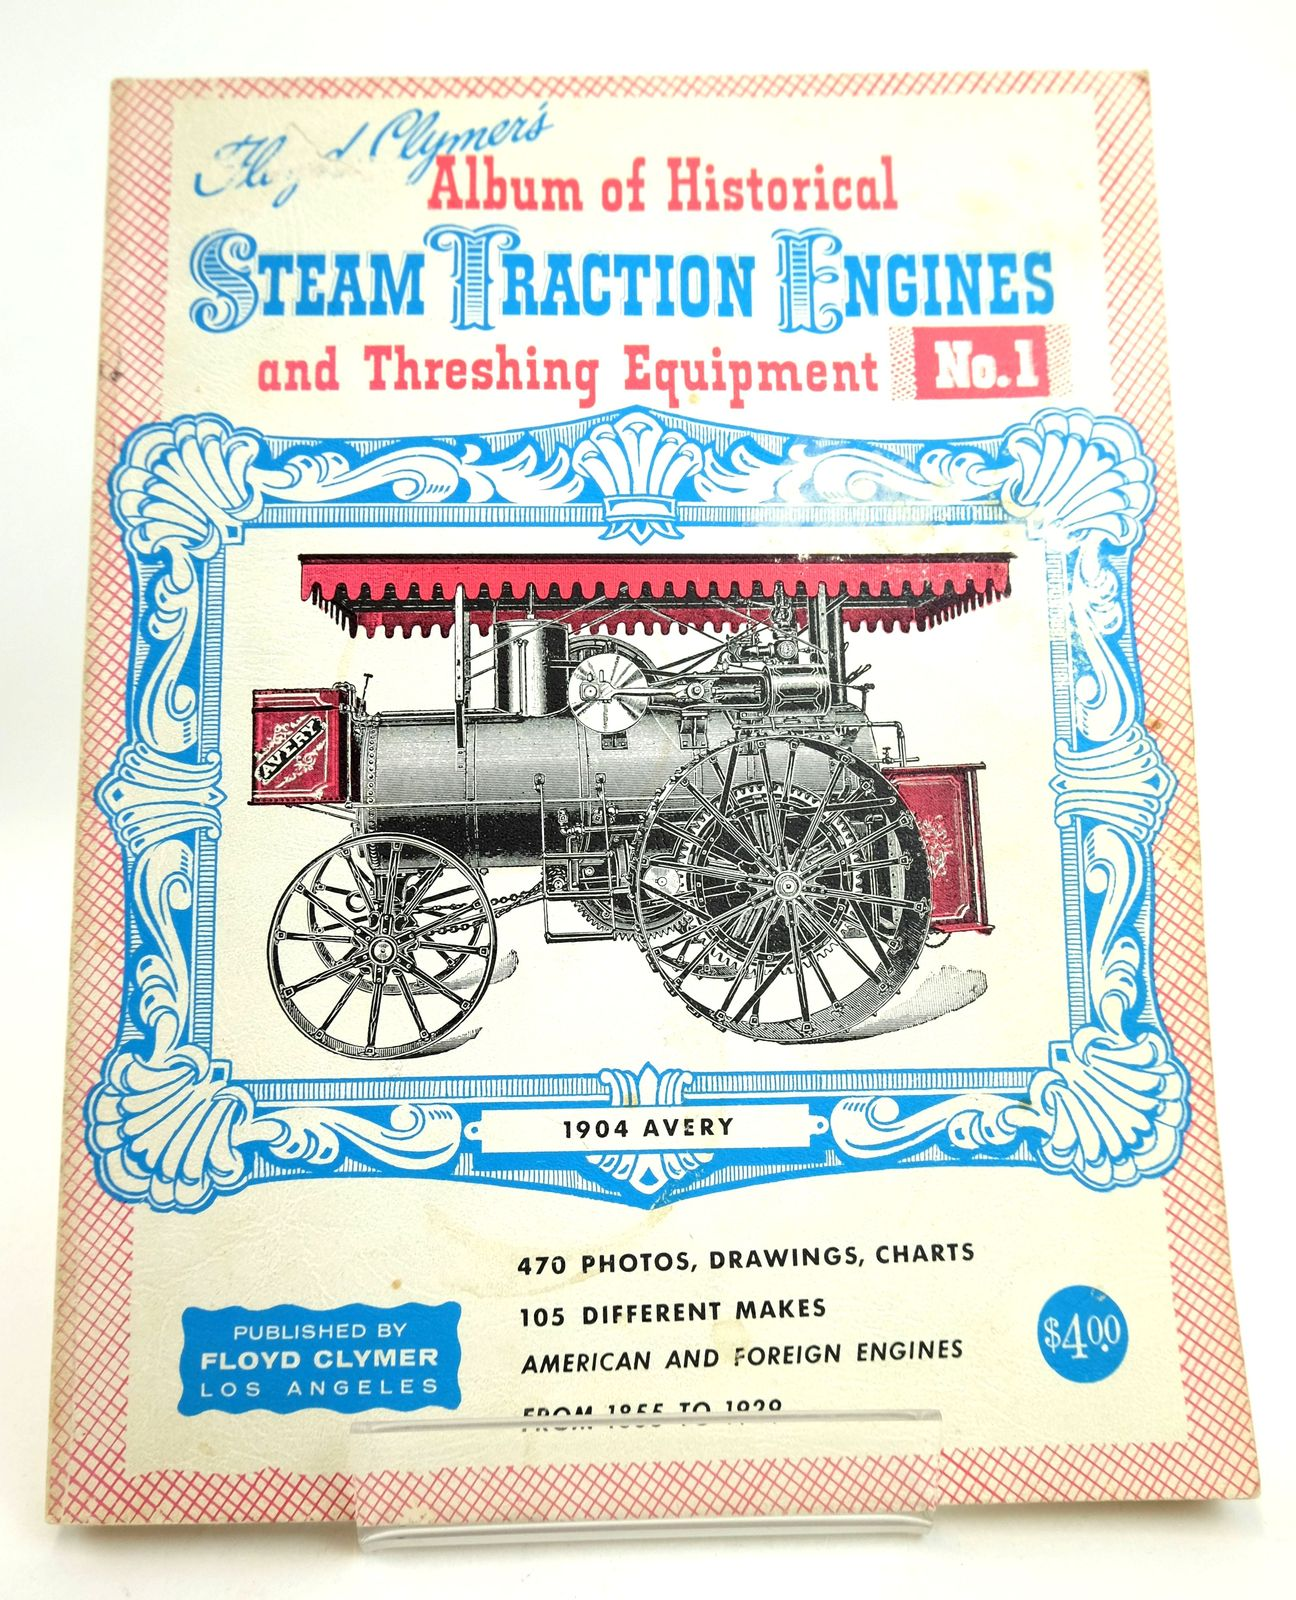 Photo of FLOYD CLYMER'S ALBUM OF HISTORICAL STEAM TRACTION ENGINES AND THRESHING EQUIPMENT No. 1